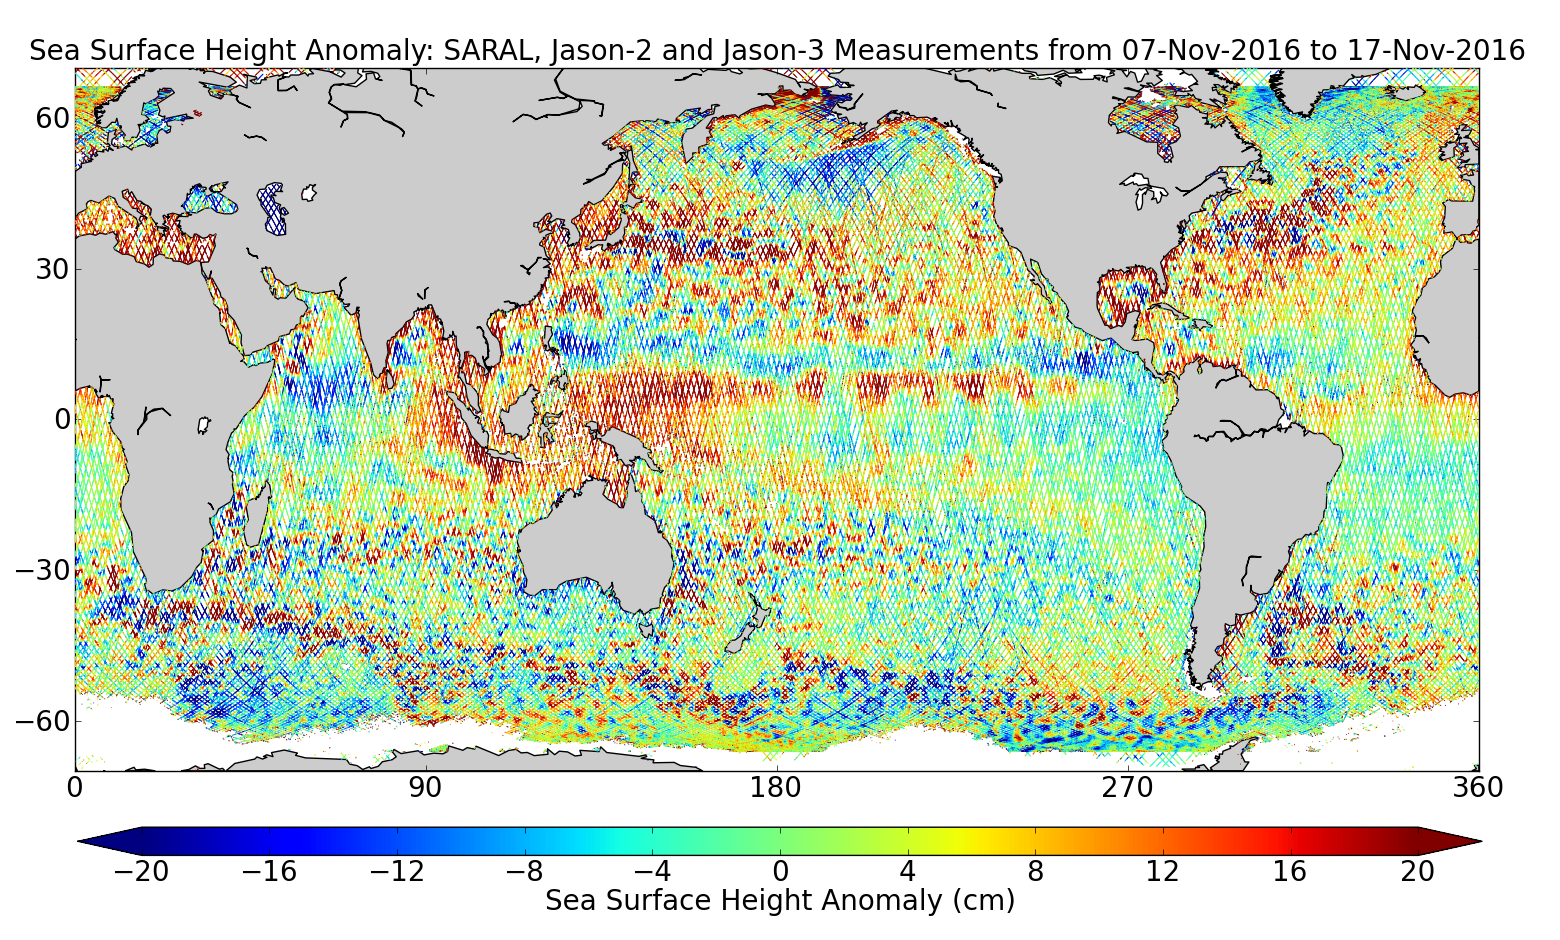 Sea Surface Height Anomaly: SARAL, Jason-2 and Jason-3 Measurements from 07-Nov-2016 to 17-Nov-2016